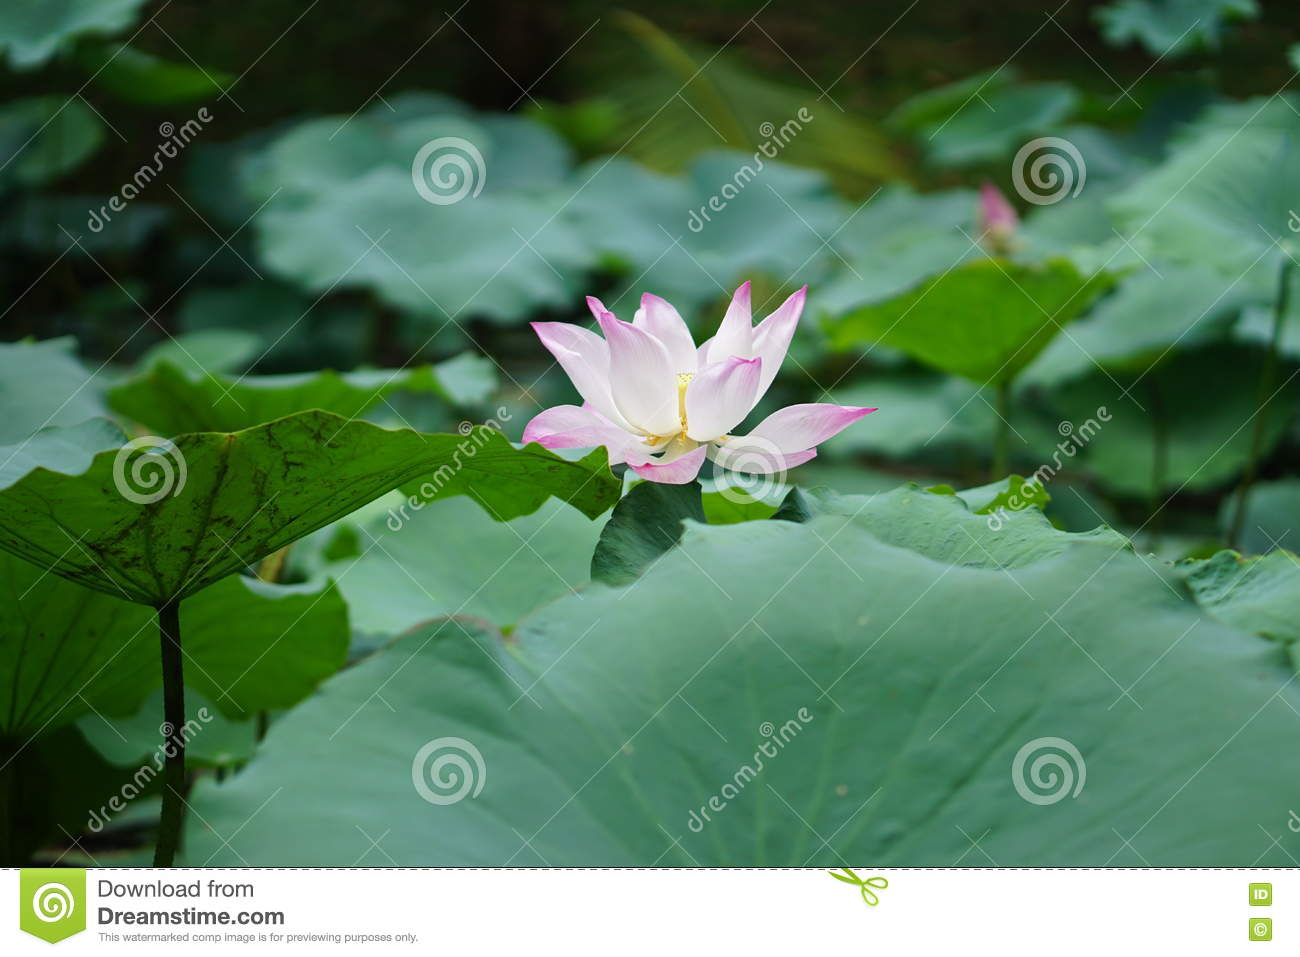 Lotus flower in pond stock photo image of blossom sunlit 79974182 download comp izmirmasajfo